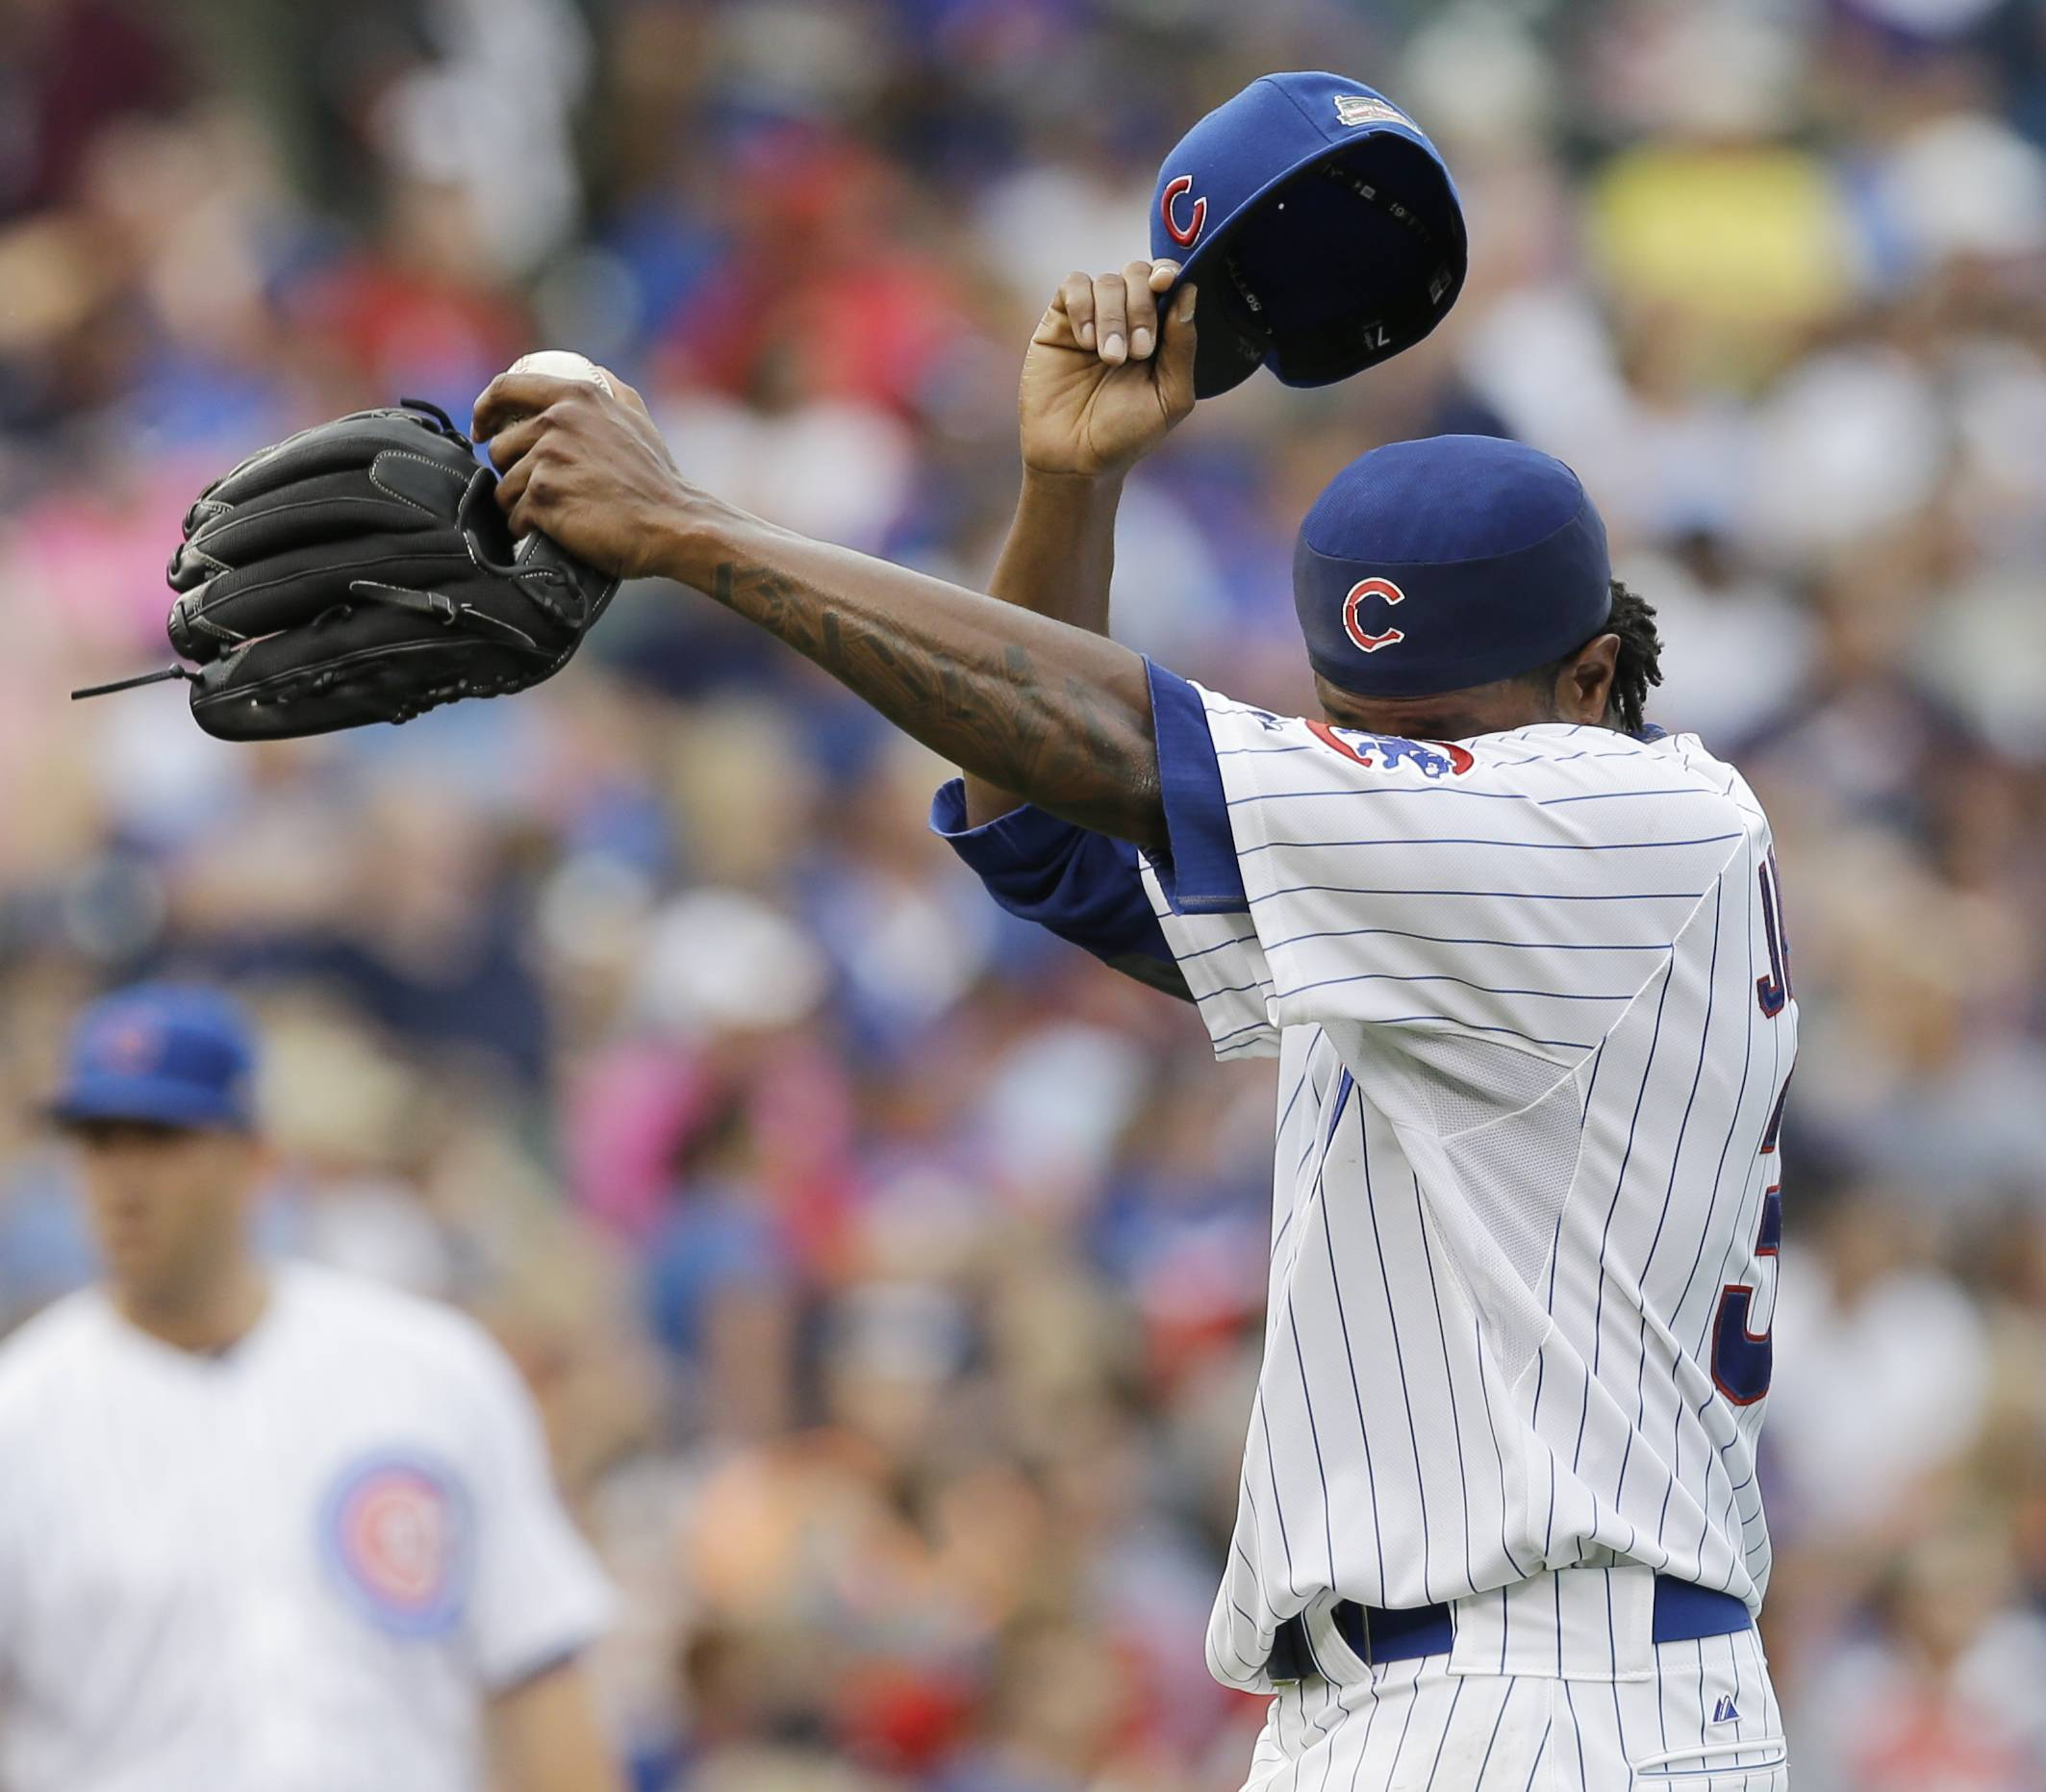 Cubs starter Edwin Jackson saw his ERA climb from 5.05 to 5.64 after Saturday's 11-6 loss to the Braves on Saturday.